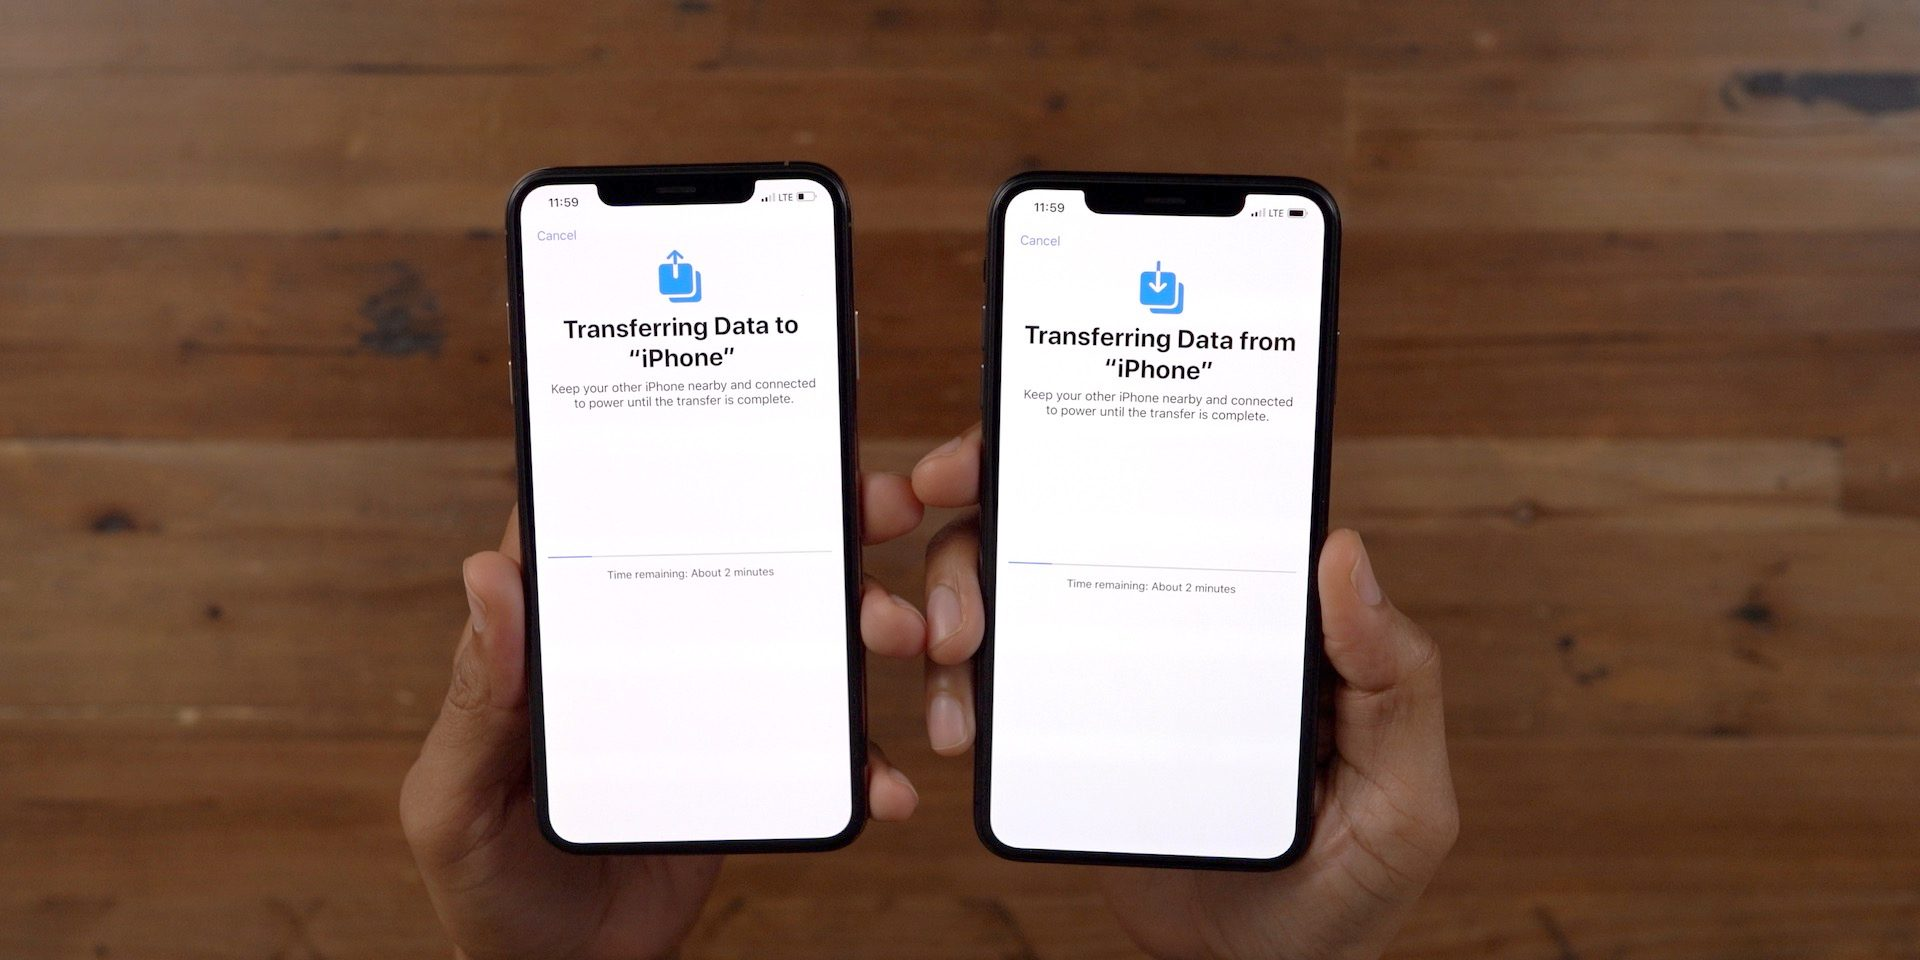 If you are switching your iPhone, transferring so much of the data accumulated through months and years can be a task and a half. Nobody likes doing it, but you can't live without your old data too. This is why you must know of easy and safe ways through which you can have all your data into a new iPhone without any hassle. Today, we are discussing three methods through which you can transfer your data from an old iPhone to a new one easily. Let's discuss them now: Use iTunes To Transfer iPhone Data Simply by using the iTunes app, you can safely transfer the data. It isn't a hard process either. Just follow the steps mentioned below and you will be good to go: - Make sure your device isn't set up already. If it is, you will have to erase before you can backup your data using iTunes - Turn on your new device. There will be a 'Hello' screen along with a few prompts to follow. Follow all the instructions - Once you follow all the steps that appear on your screen, you will be given an option to restore your data from the iTunes backup. Click on the 'Next' button to ensure that you start the backup process on your new iPhone - You will now have to connect your iPhone to a computer that was used to back up the iTunes data from your old phone - When connected, open iTunes and select the new iPhone that you wish to transfer the data on - Click on 'Restore backup' and initiate the process. You will have to wait for a couple of minutes (or more) depending on the data size for your iOS device to complete the backup Use iCloud To Transfer iPhone Data A second way to transfer data is by using iCloud. This is one of the most common ways as well. One thing you need to know is that with iCloud, only the most recent or the latest backup saved on the current device can be transferred to a new one. Here is how you can do it: - Turn your new iPhone on. When the screen prompts a 'hello' sign, start setting the device as per the guided instructions - Keep following the instructions until